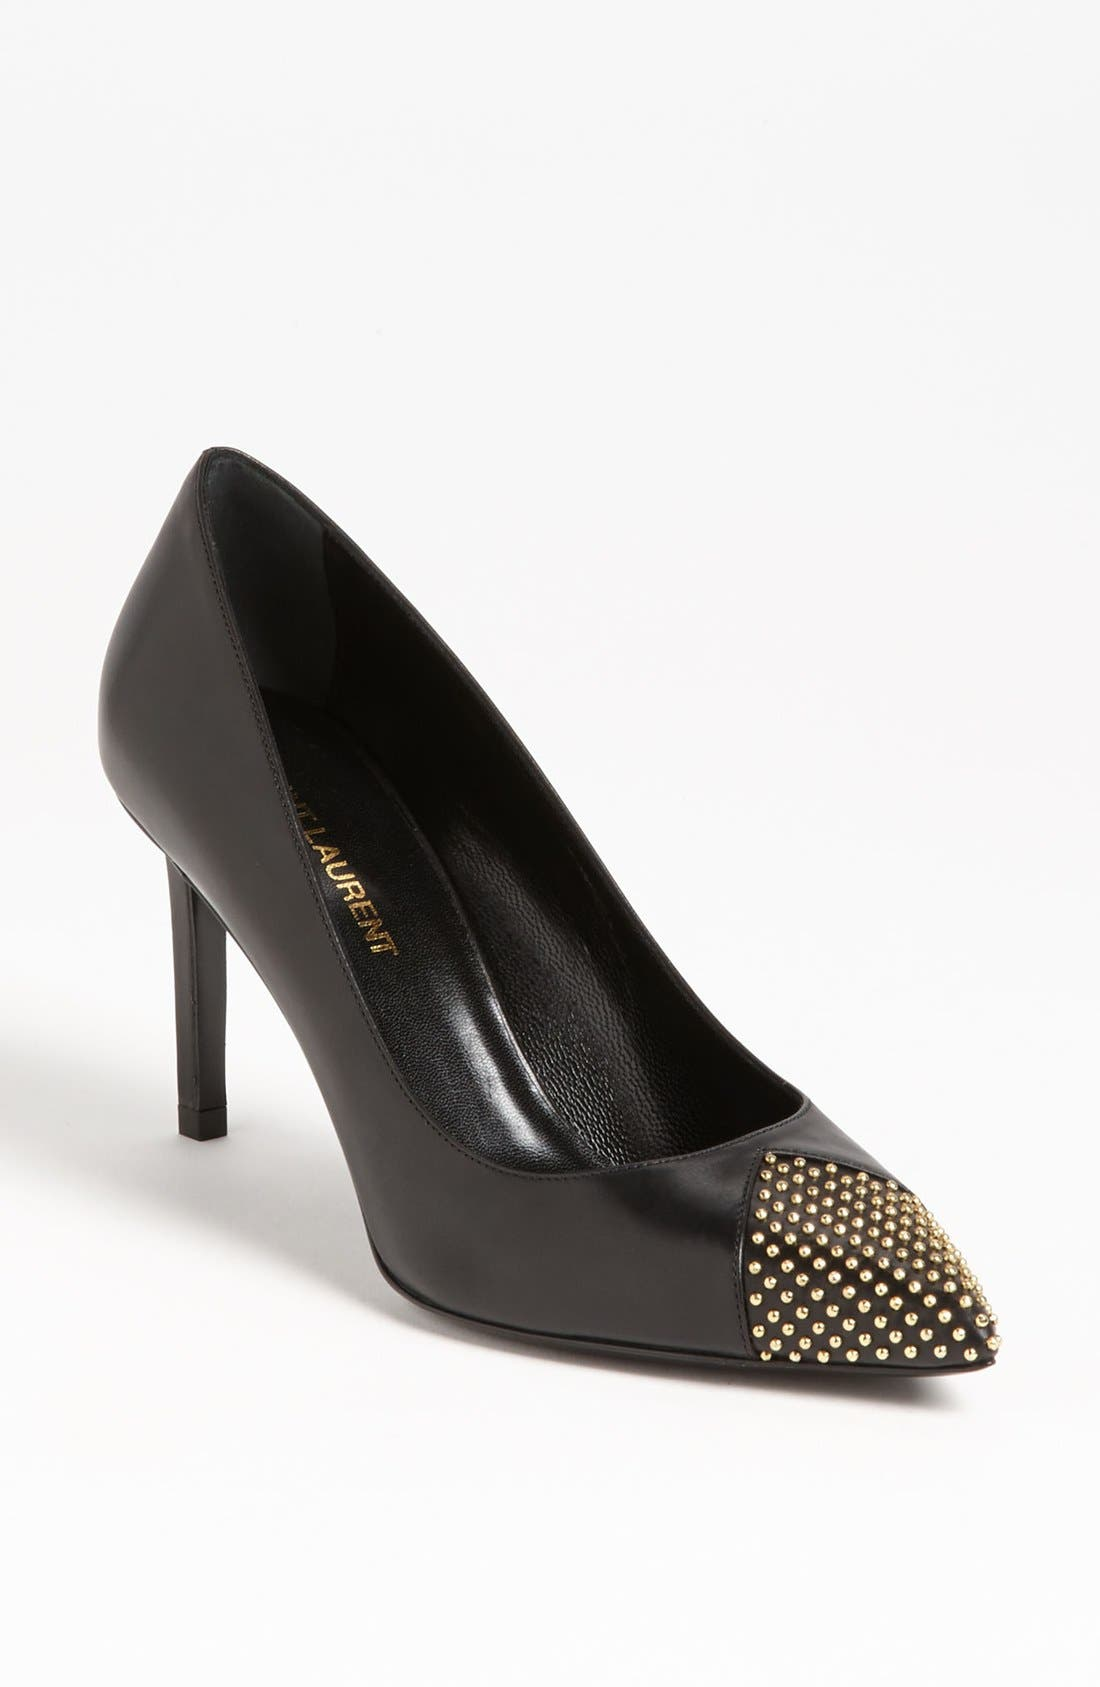 Alternate Image 1 Selected - Saint Laurent Studded Toe Pump